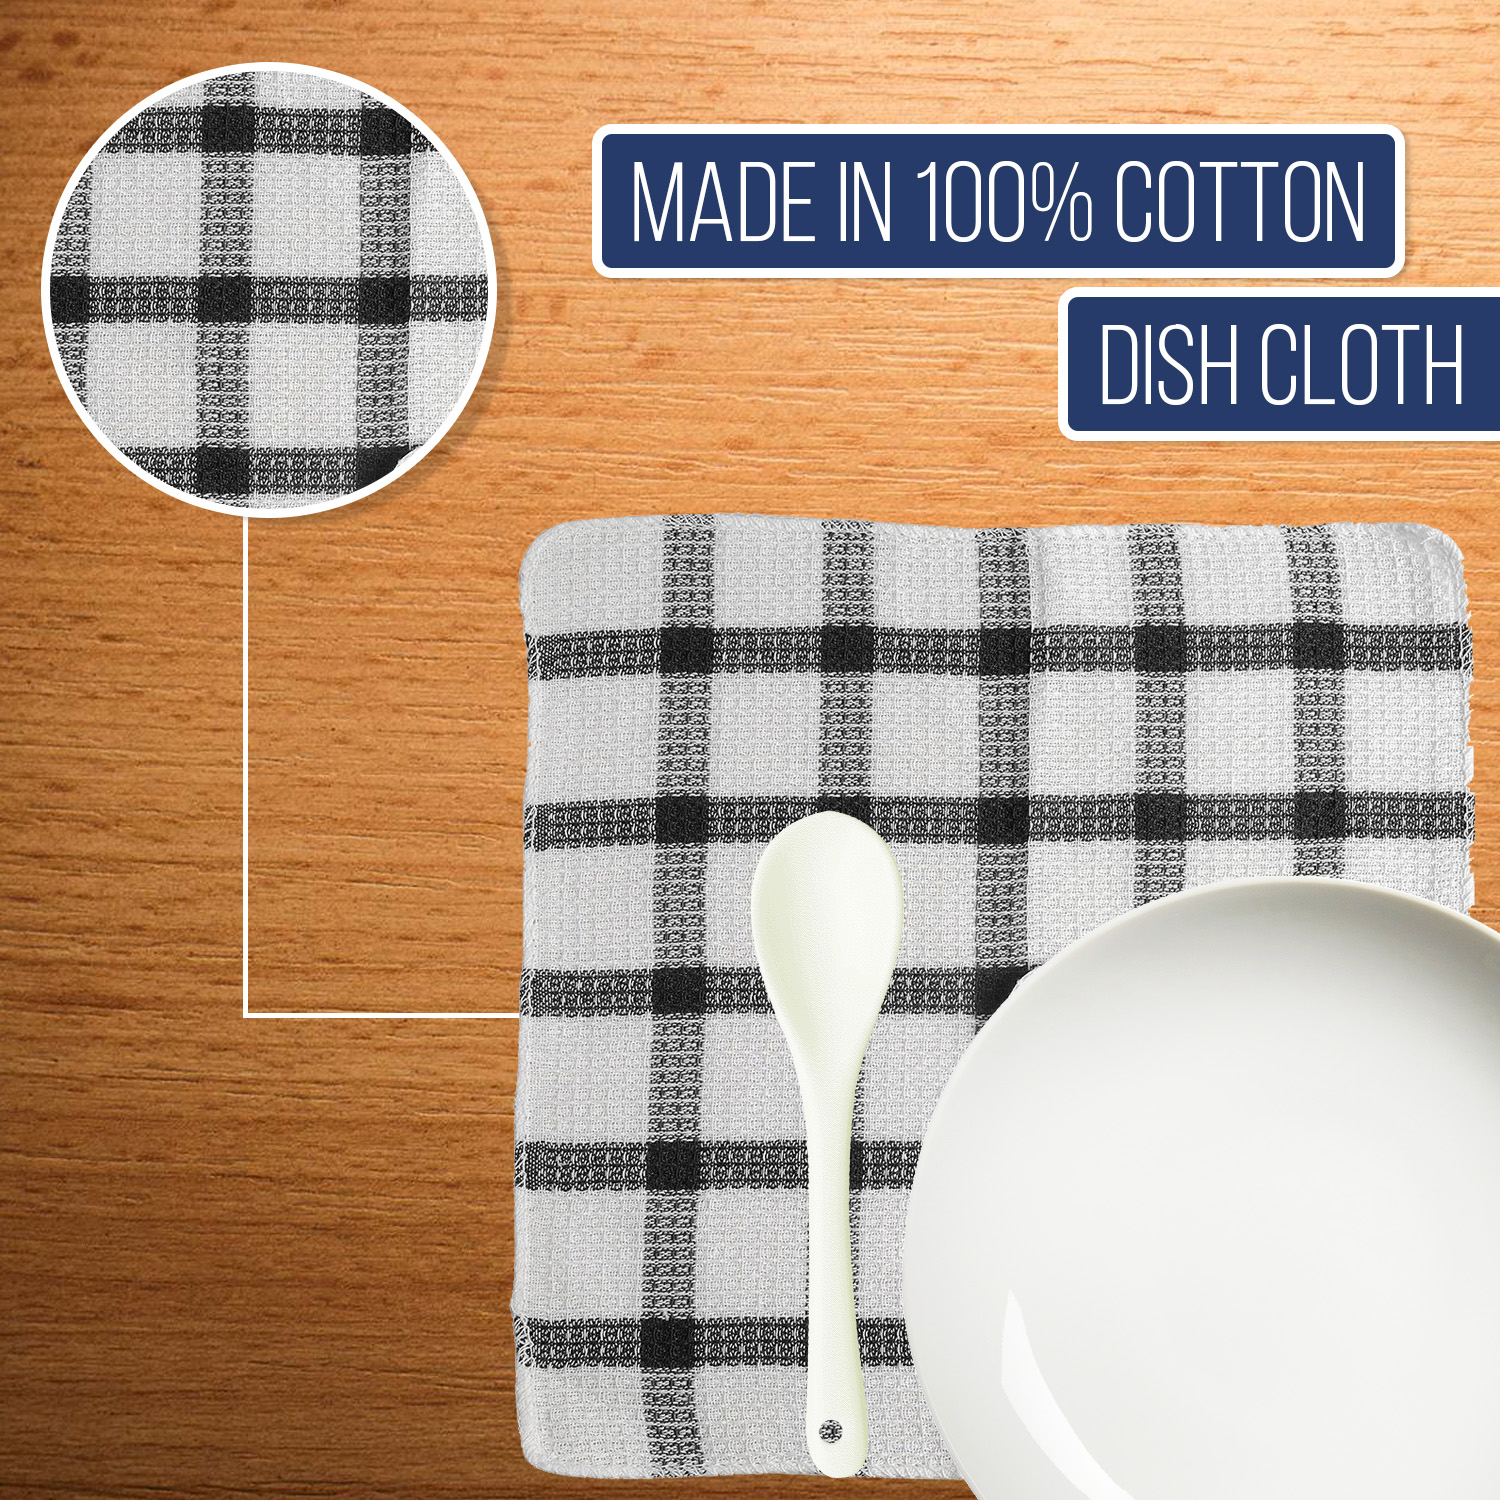 Set-of-24-Checkered-100-Cotton-Dish-Cloth-Kitchen-Cleaning-Cloth thumbnail 10